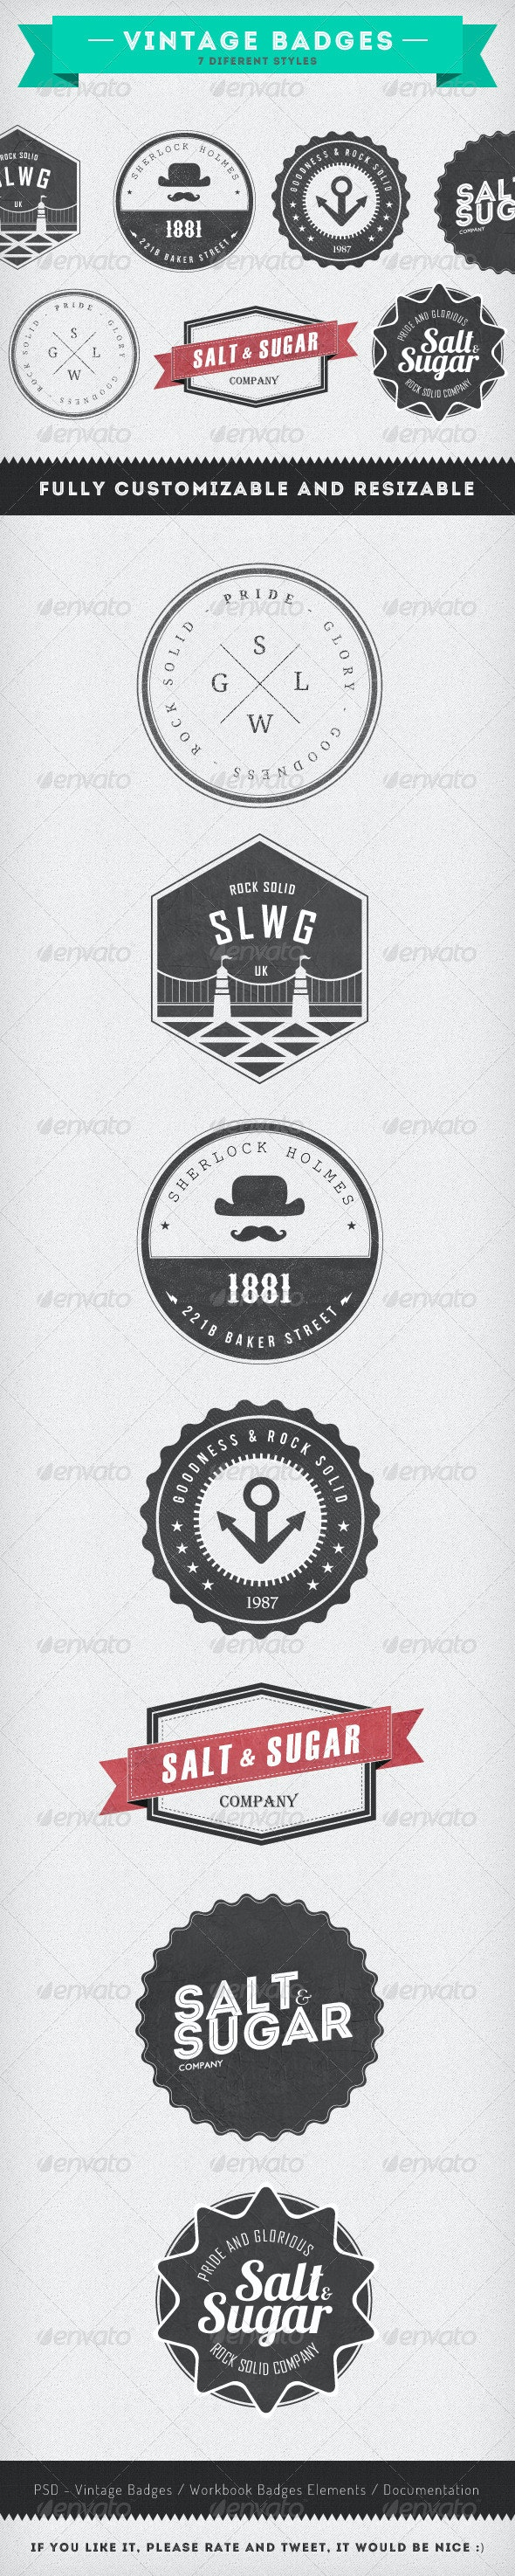 Vintage Badges - 7 Diferent Styles - Badges & Stickers Web Elements